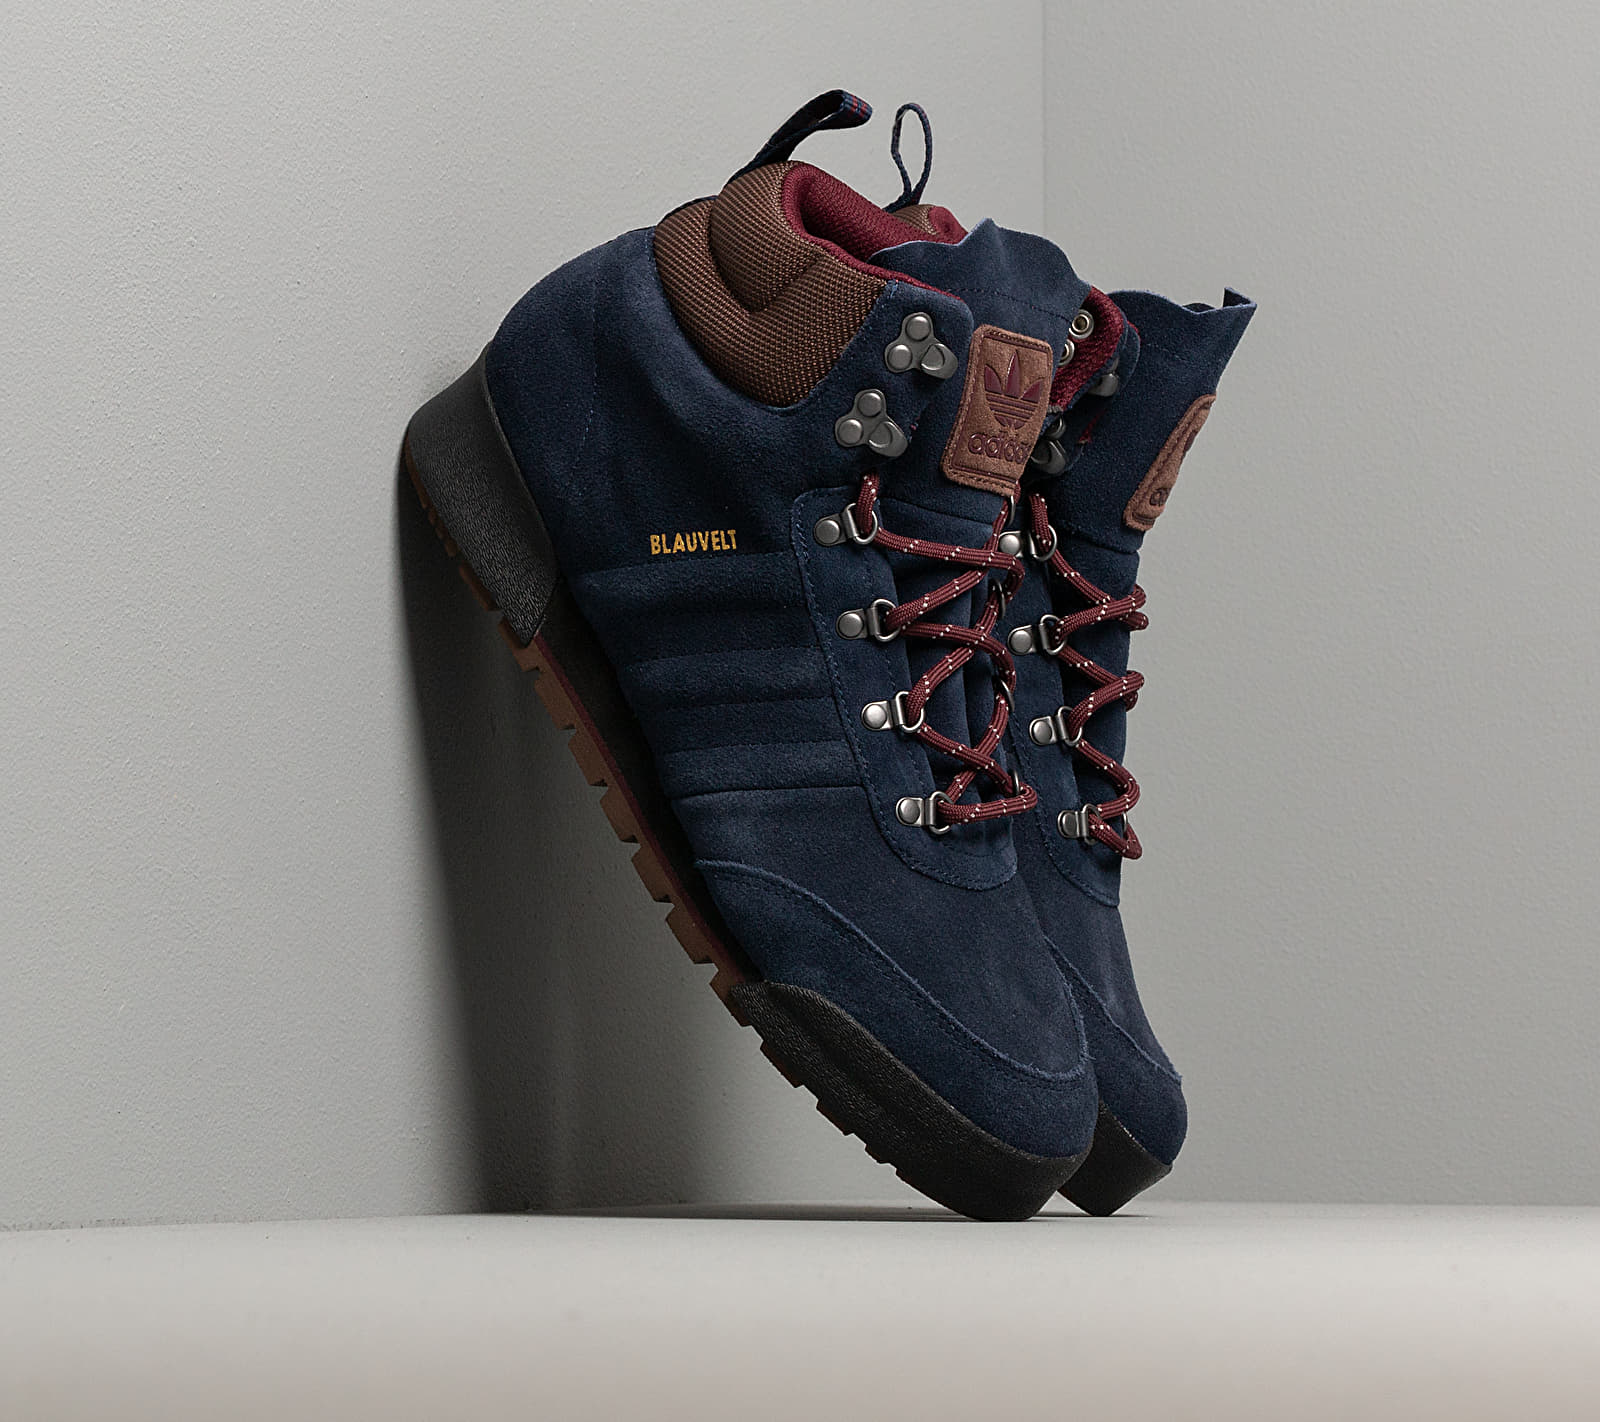 adidas Jake Boot 2.0 Collegiate Navy/ Maroon/ Brown EE6207